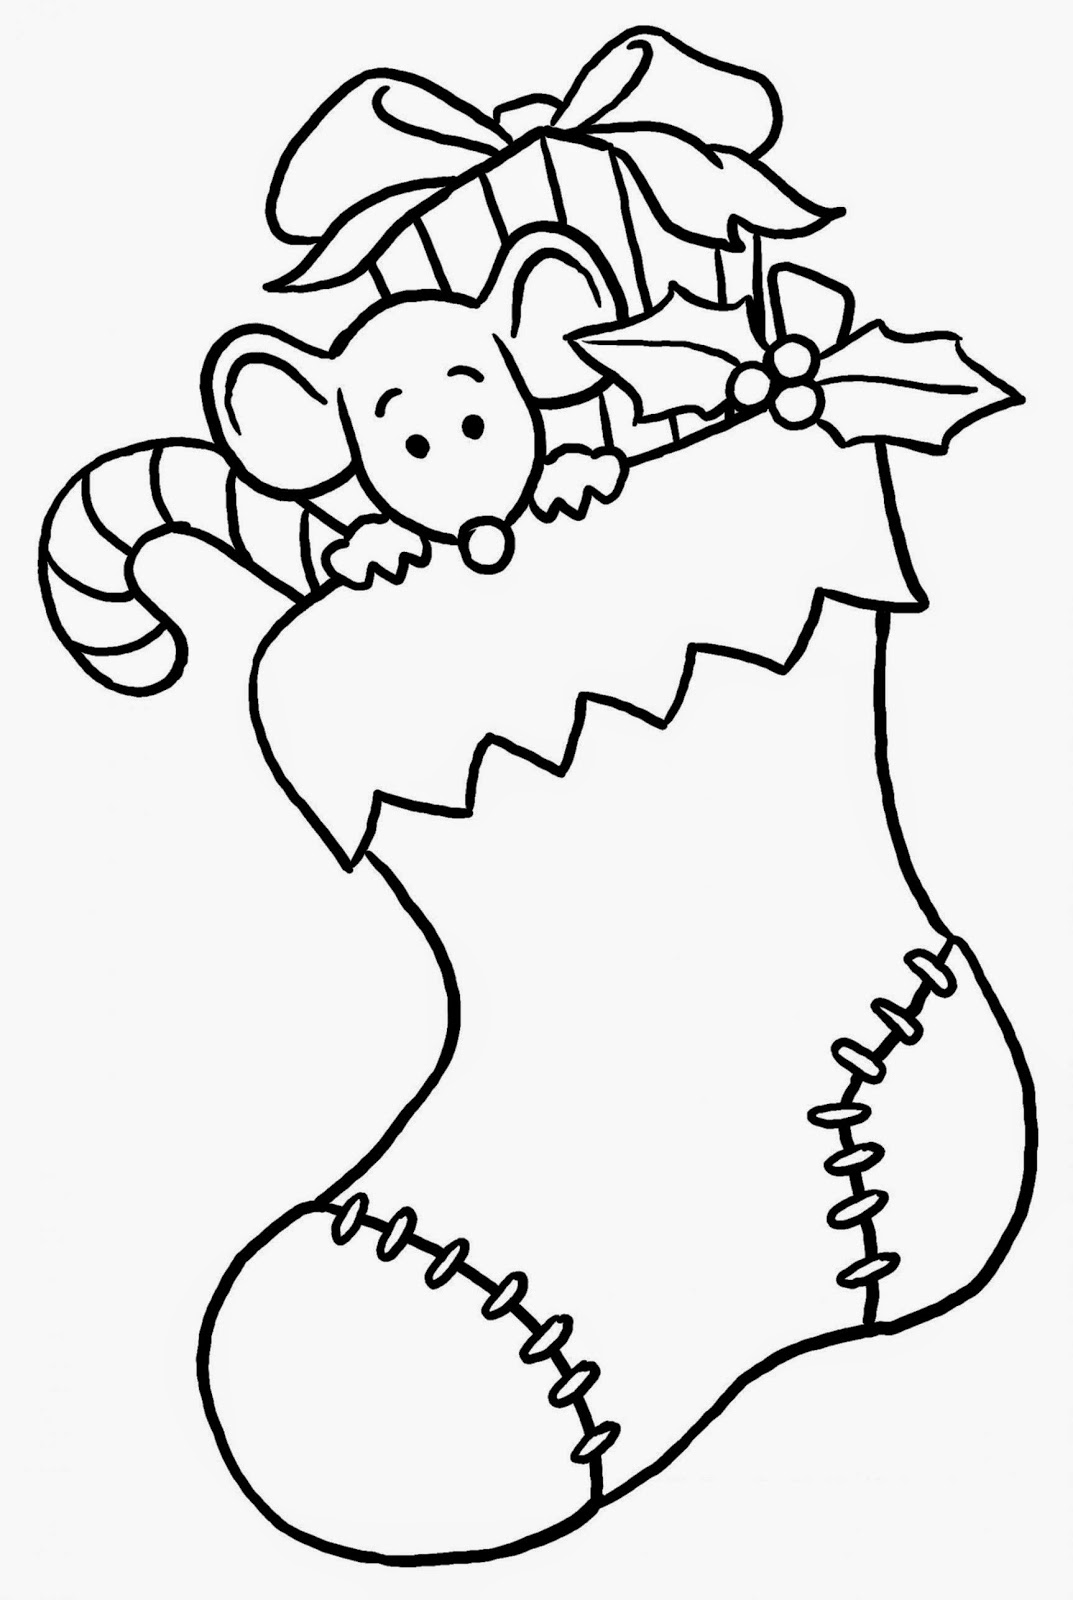 Coloring sheets for preschool - Preschool Coloring Pages